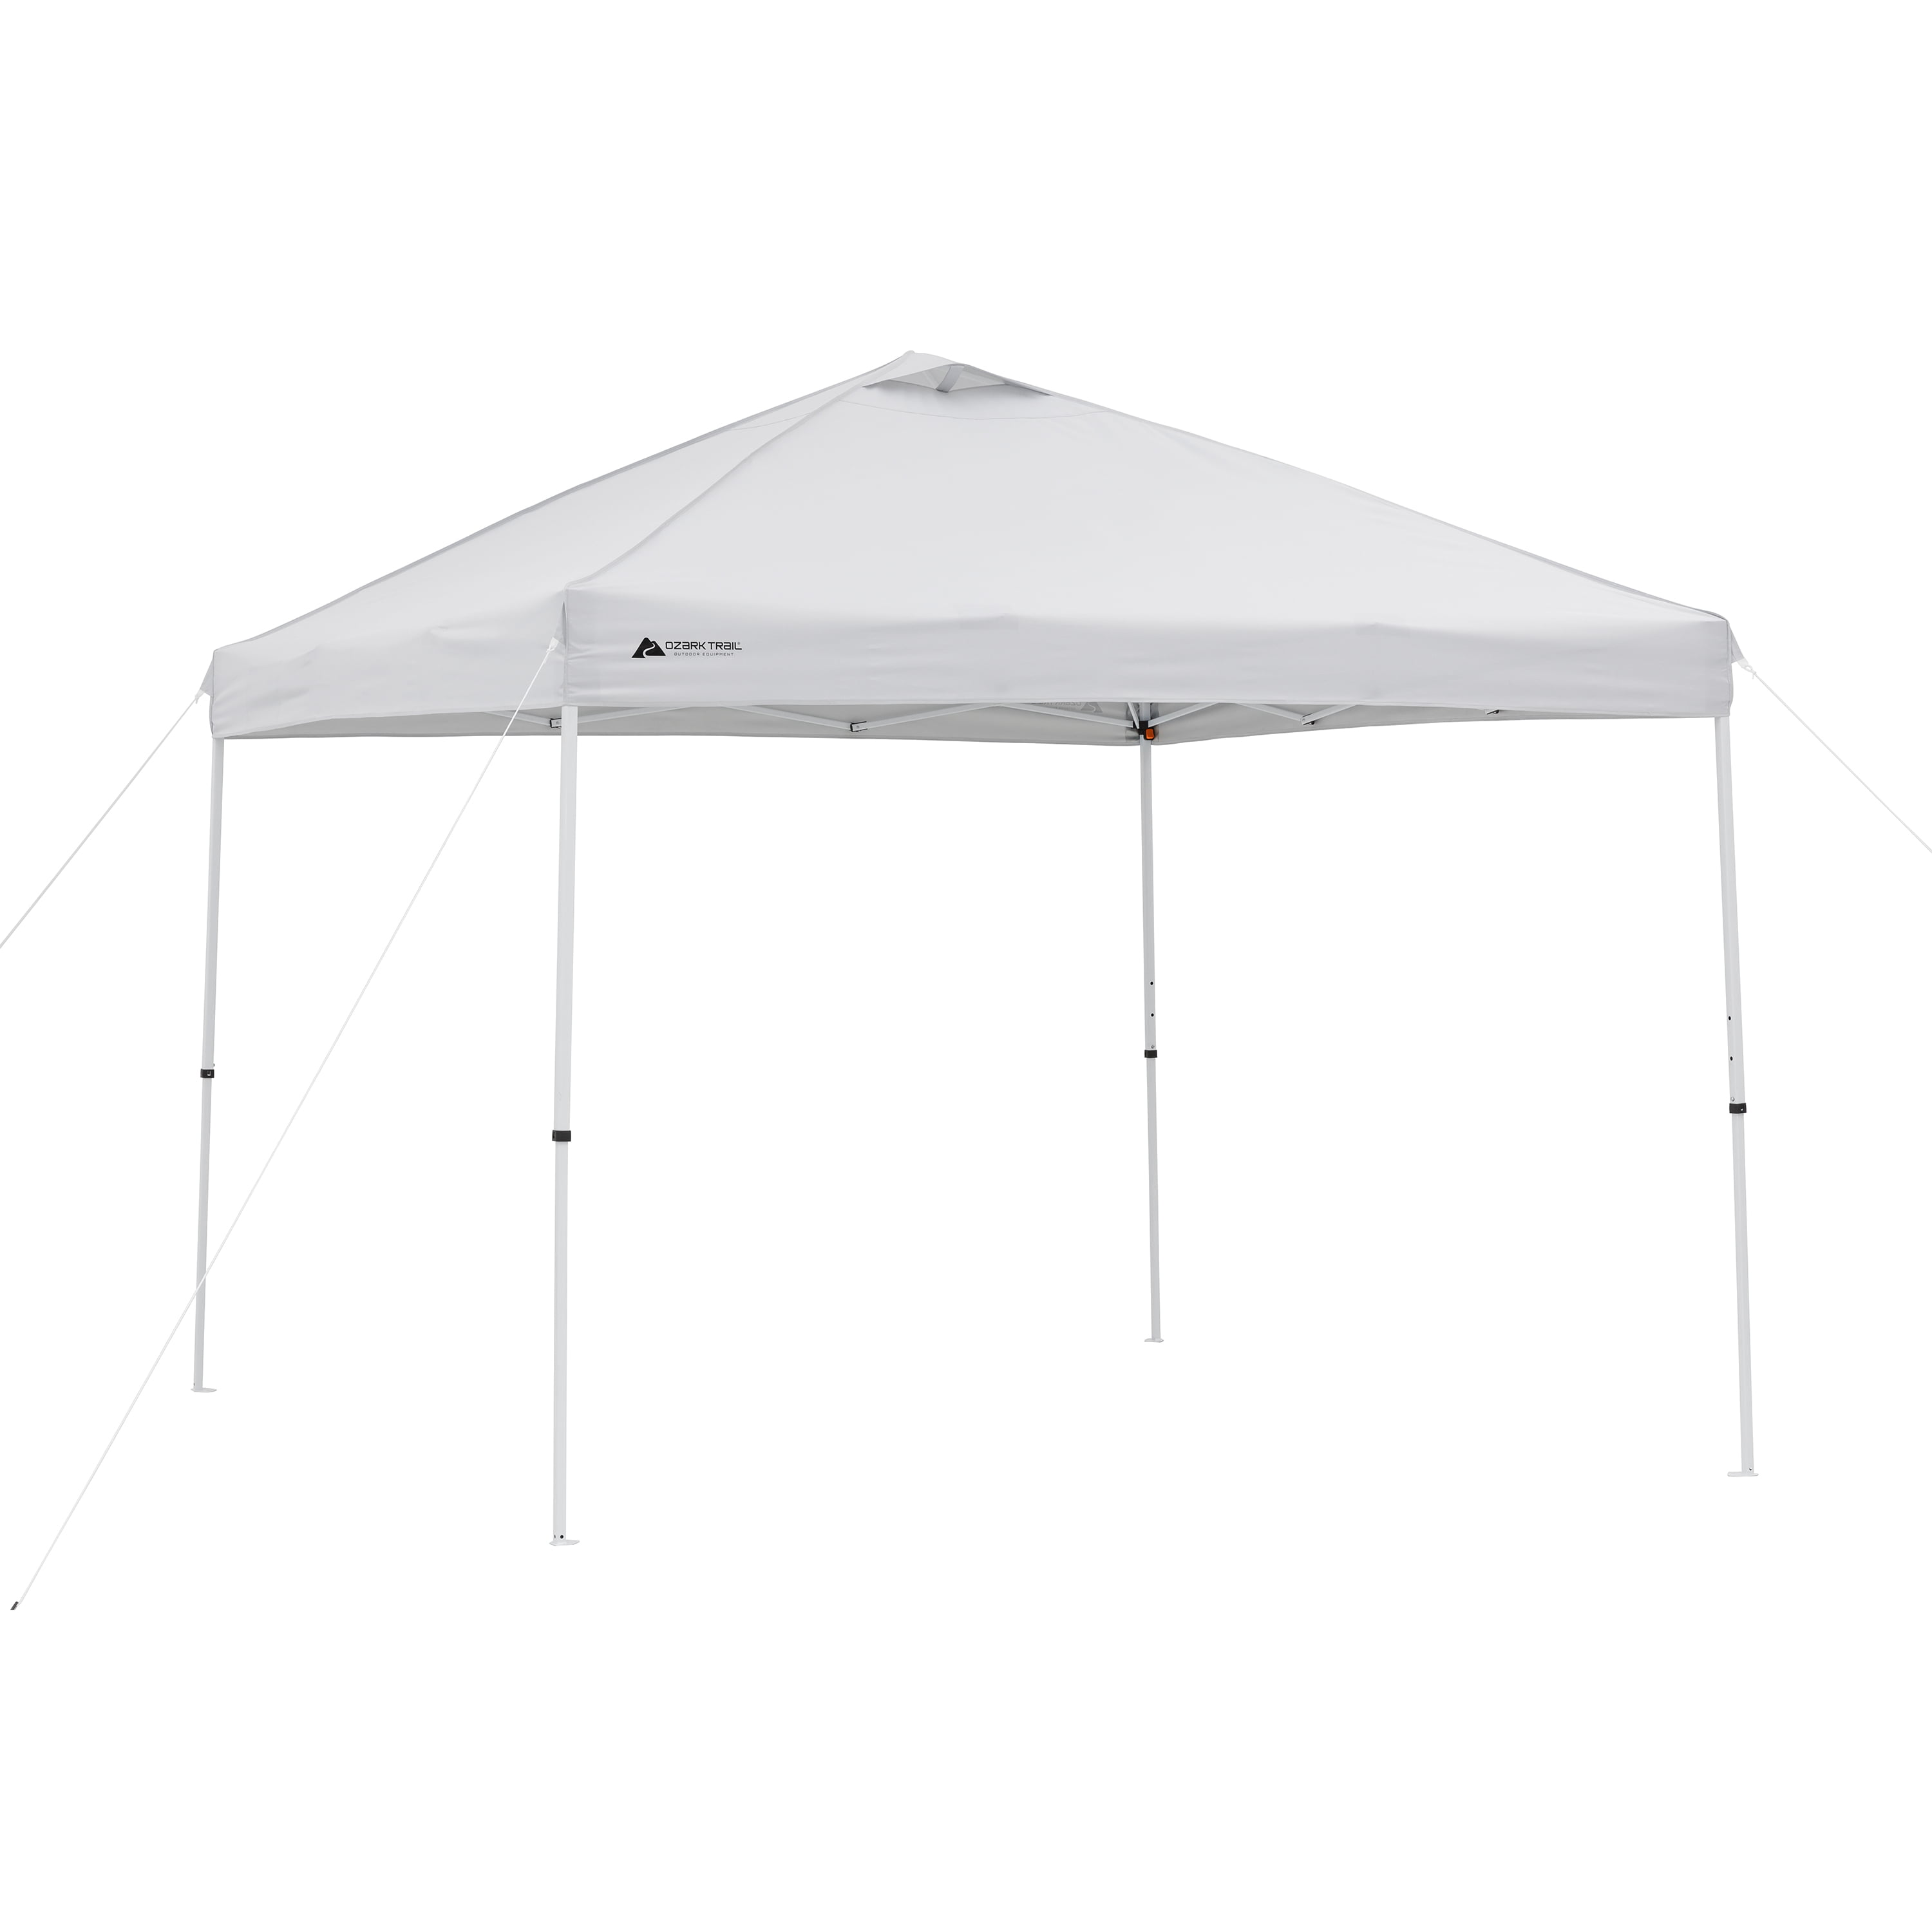 Ozark Trail 10'x10' Instant Canopy, White by CAMPVALLEY XIAMEN CO LTD